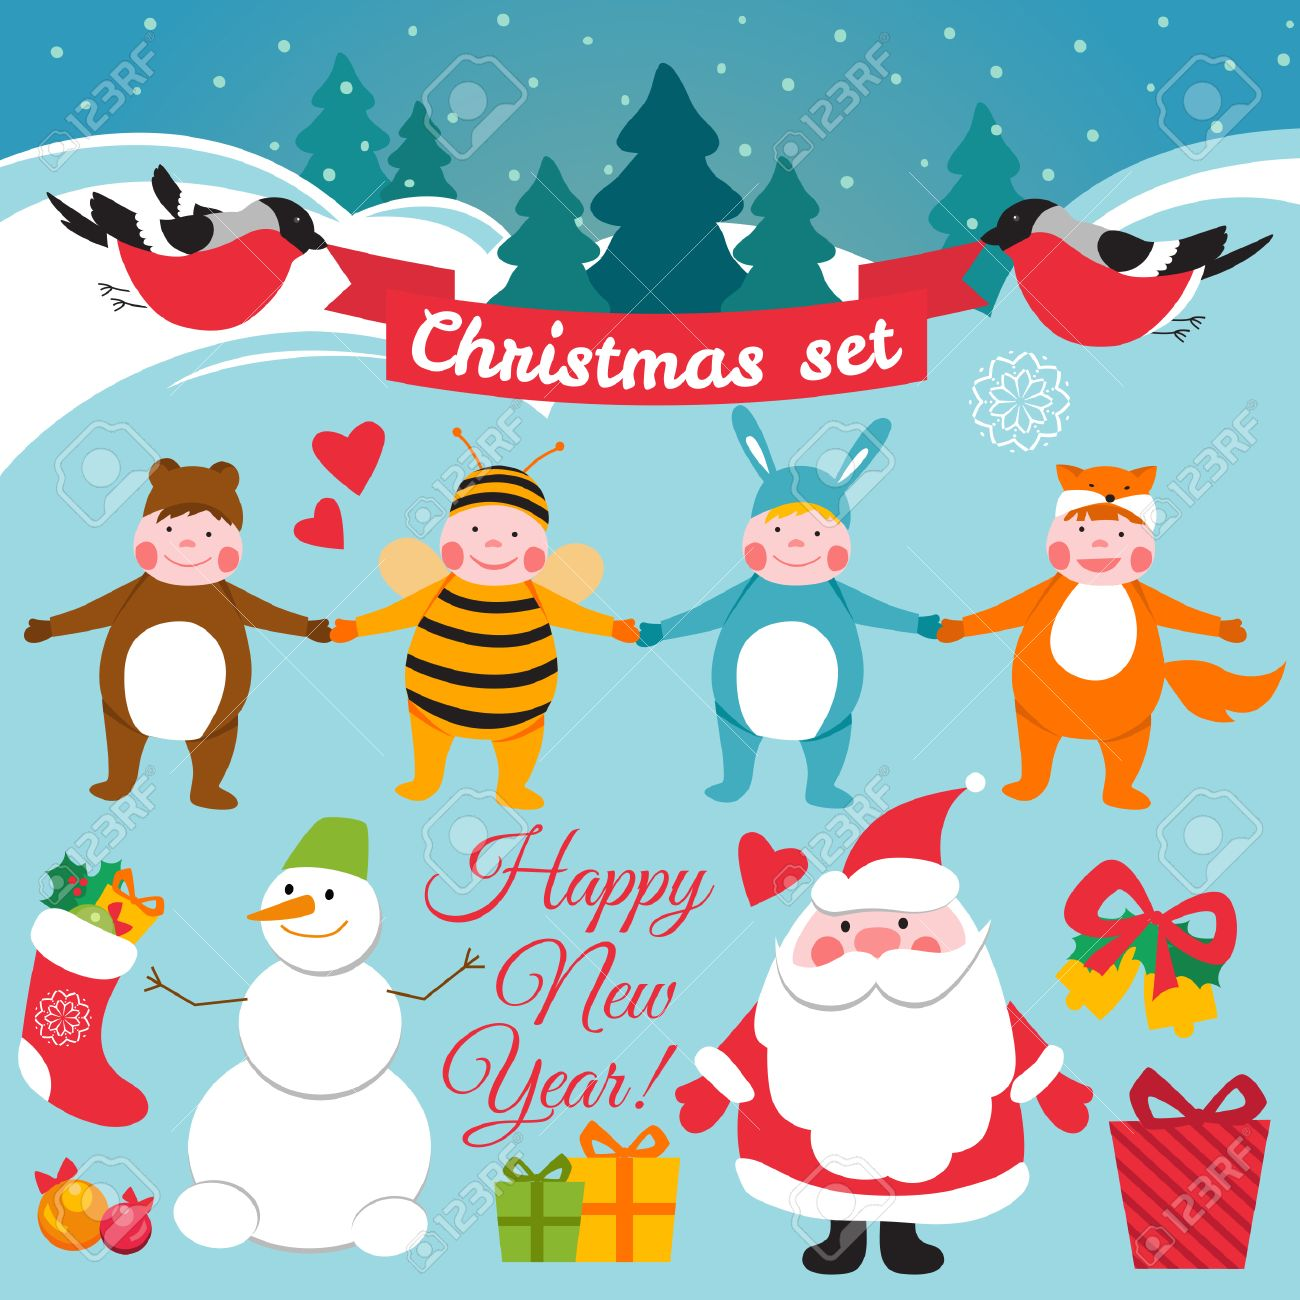 Colorful Christmas Background For Kids.Set Of Colorful Christmas Characters And Decorations Christmas